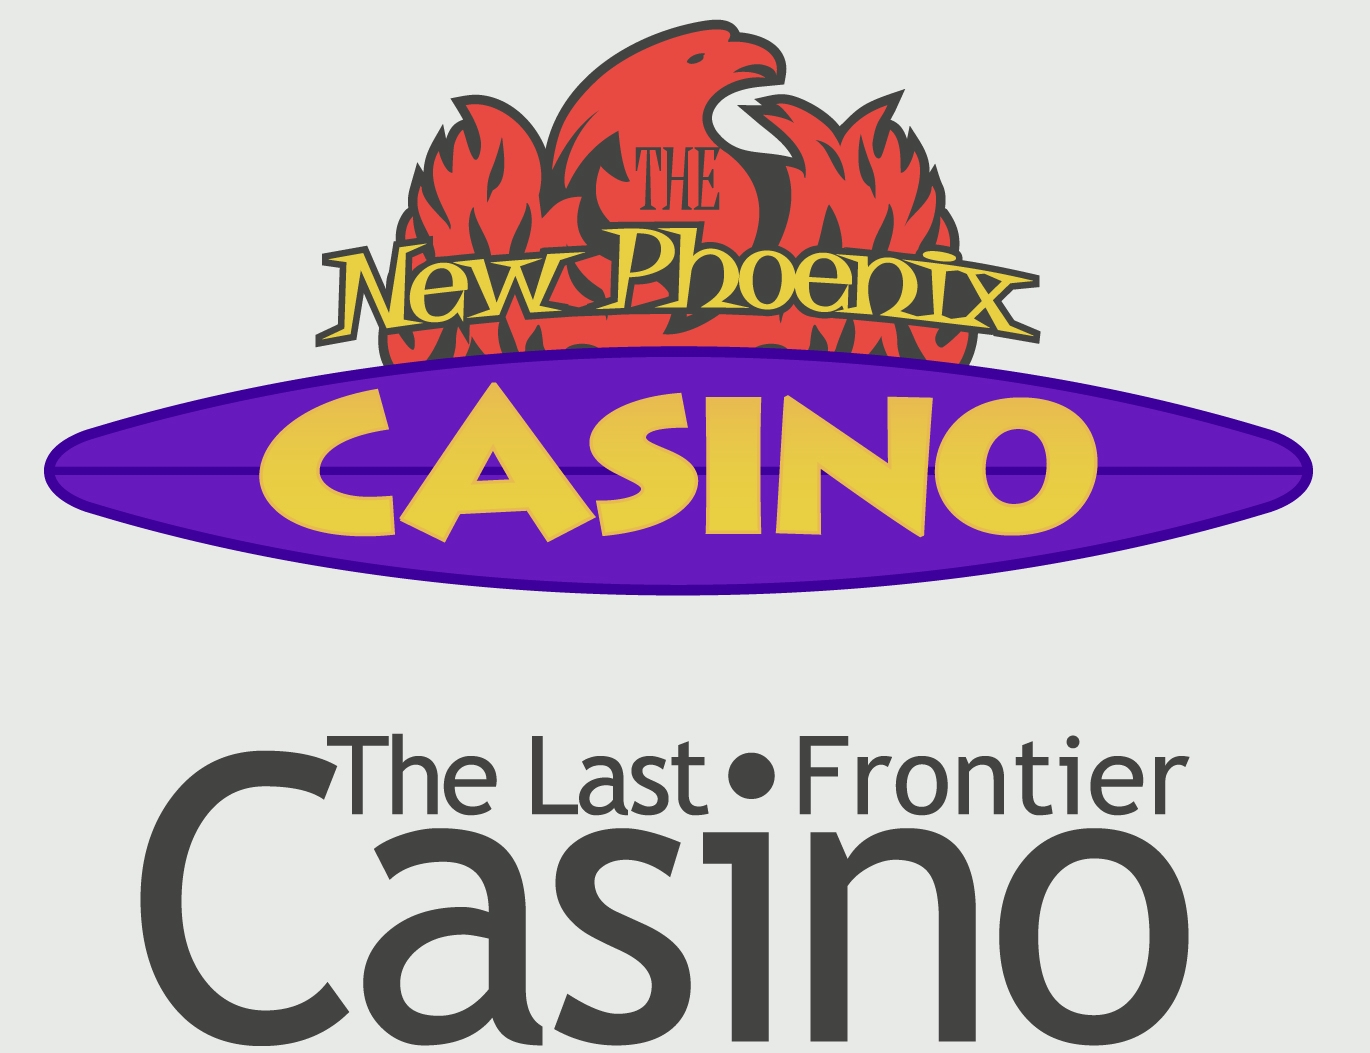 Casino referrers slot total webourmedorguk monte casino school